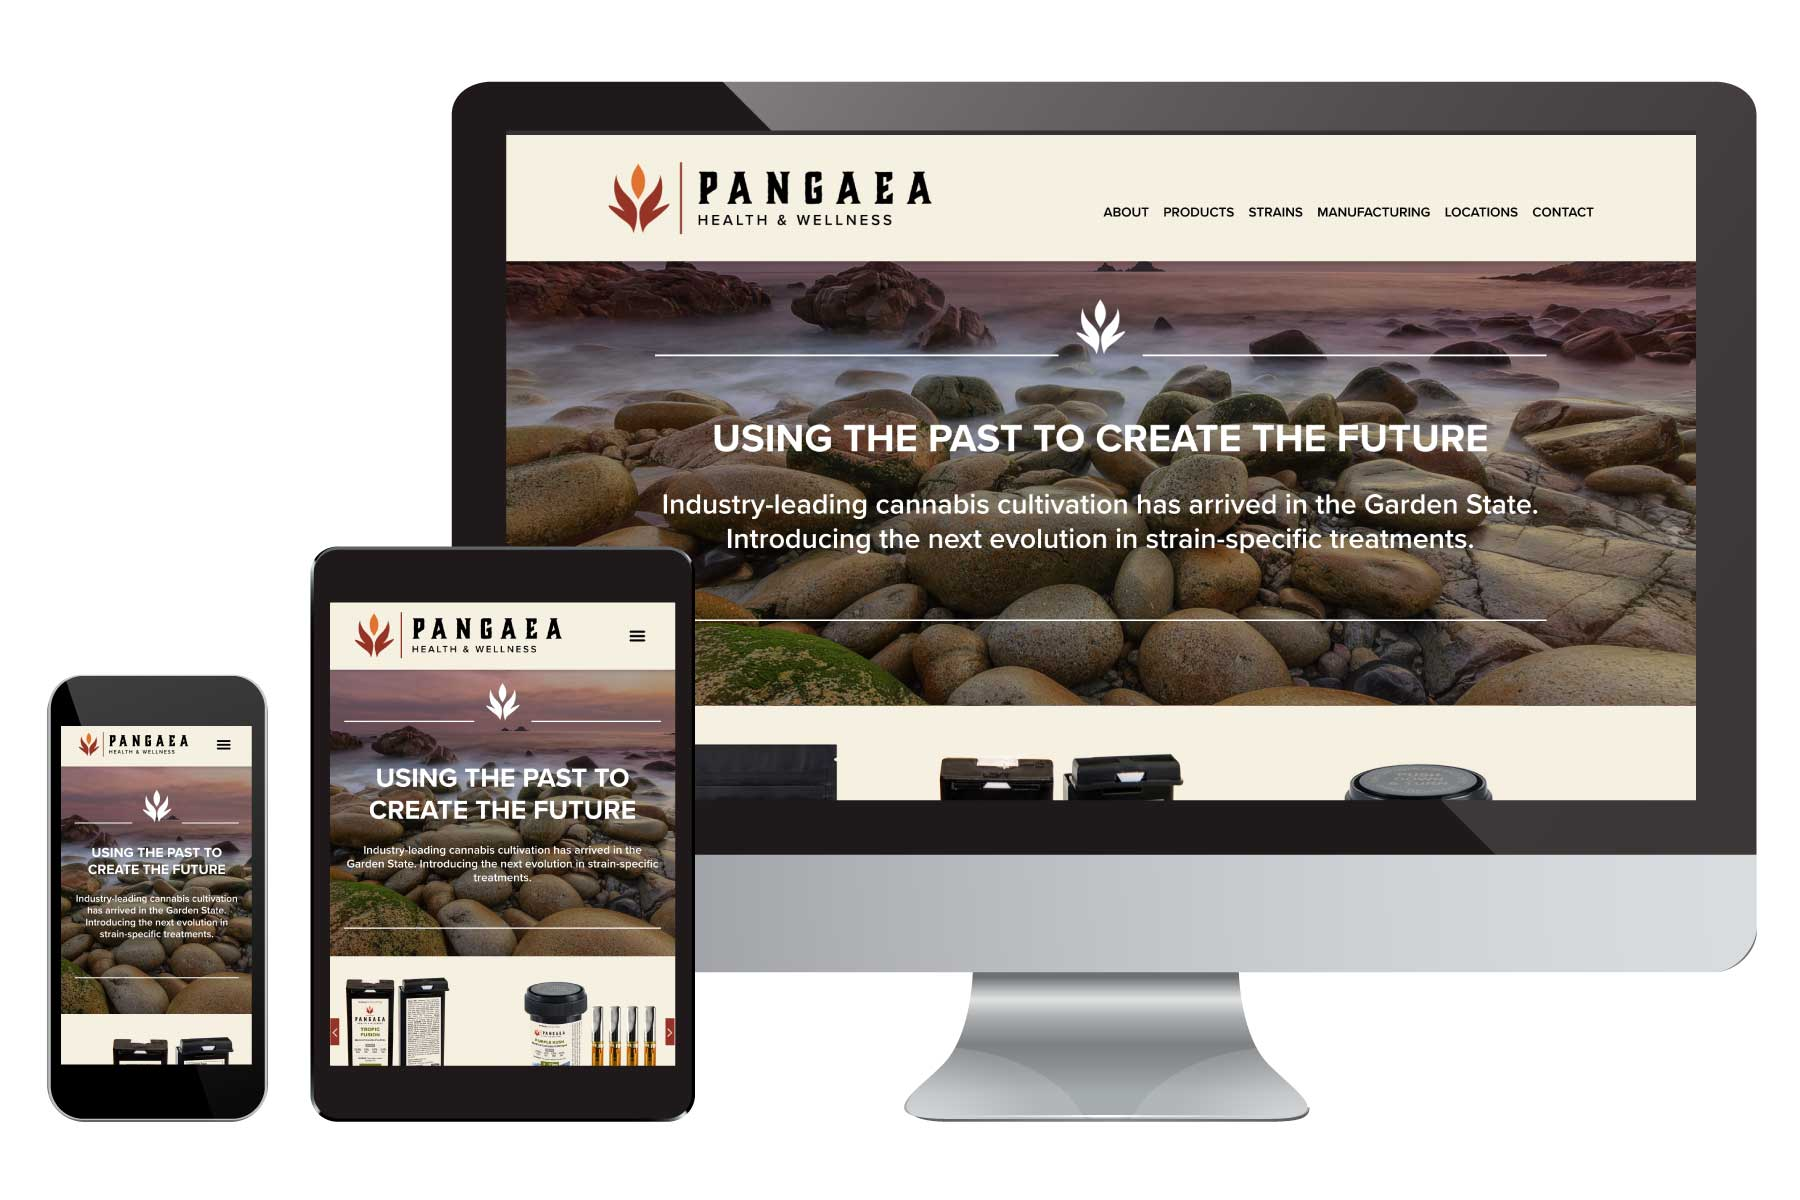 pangaea_website